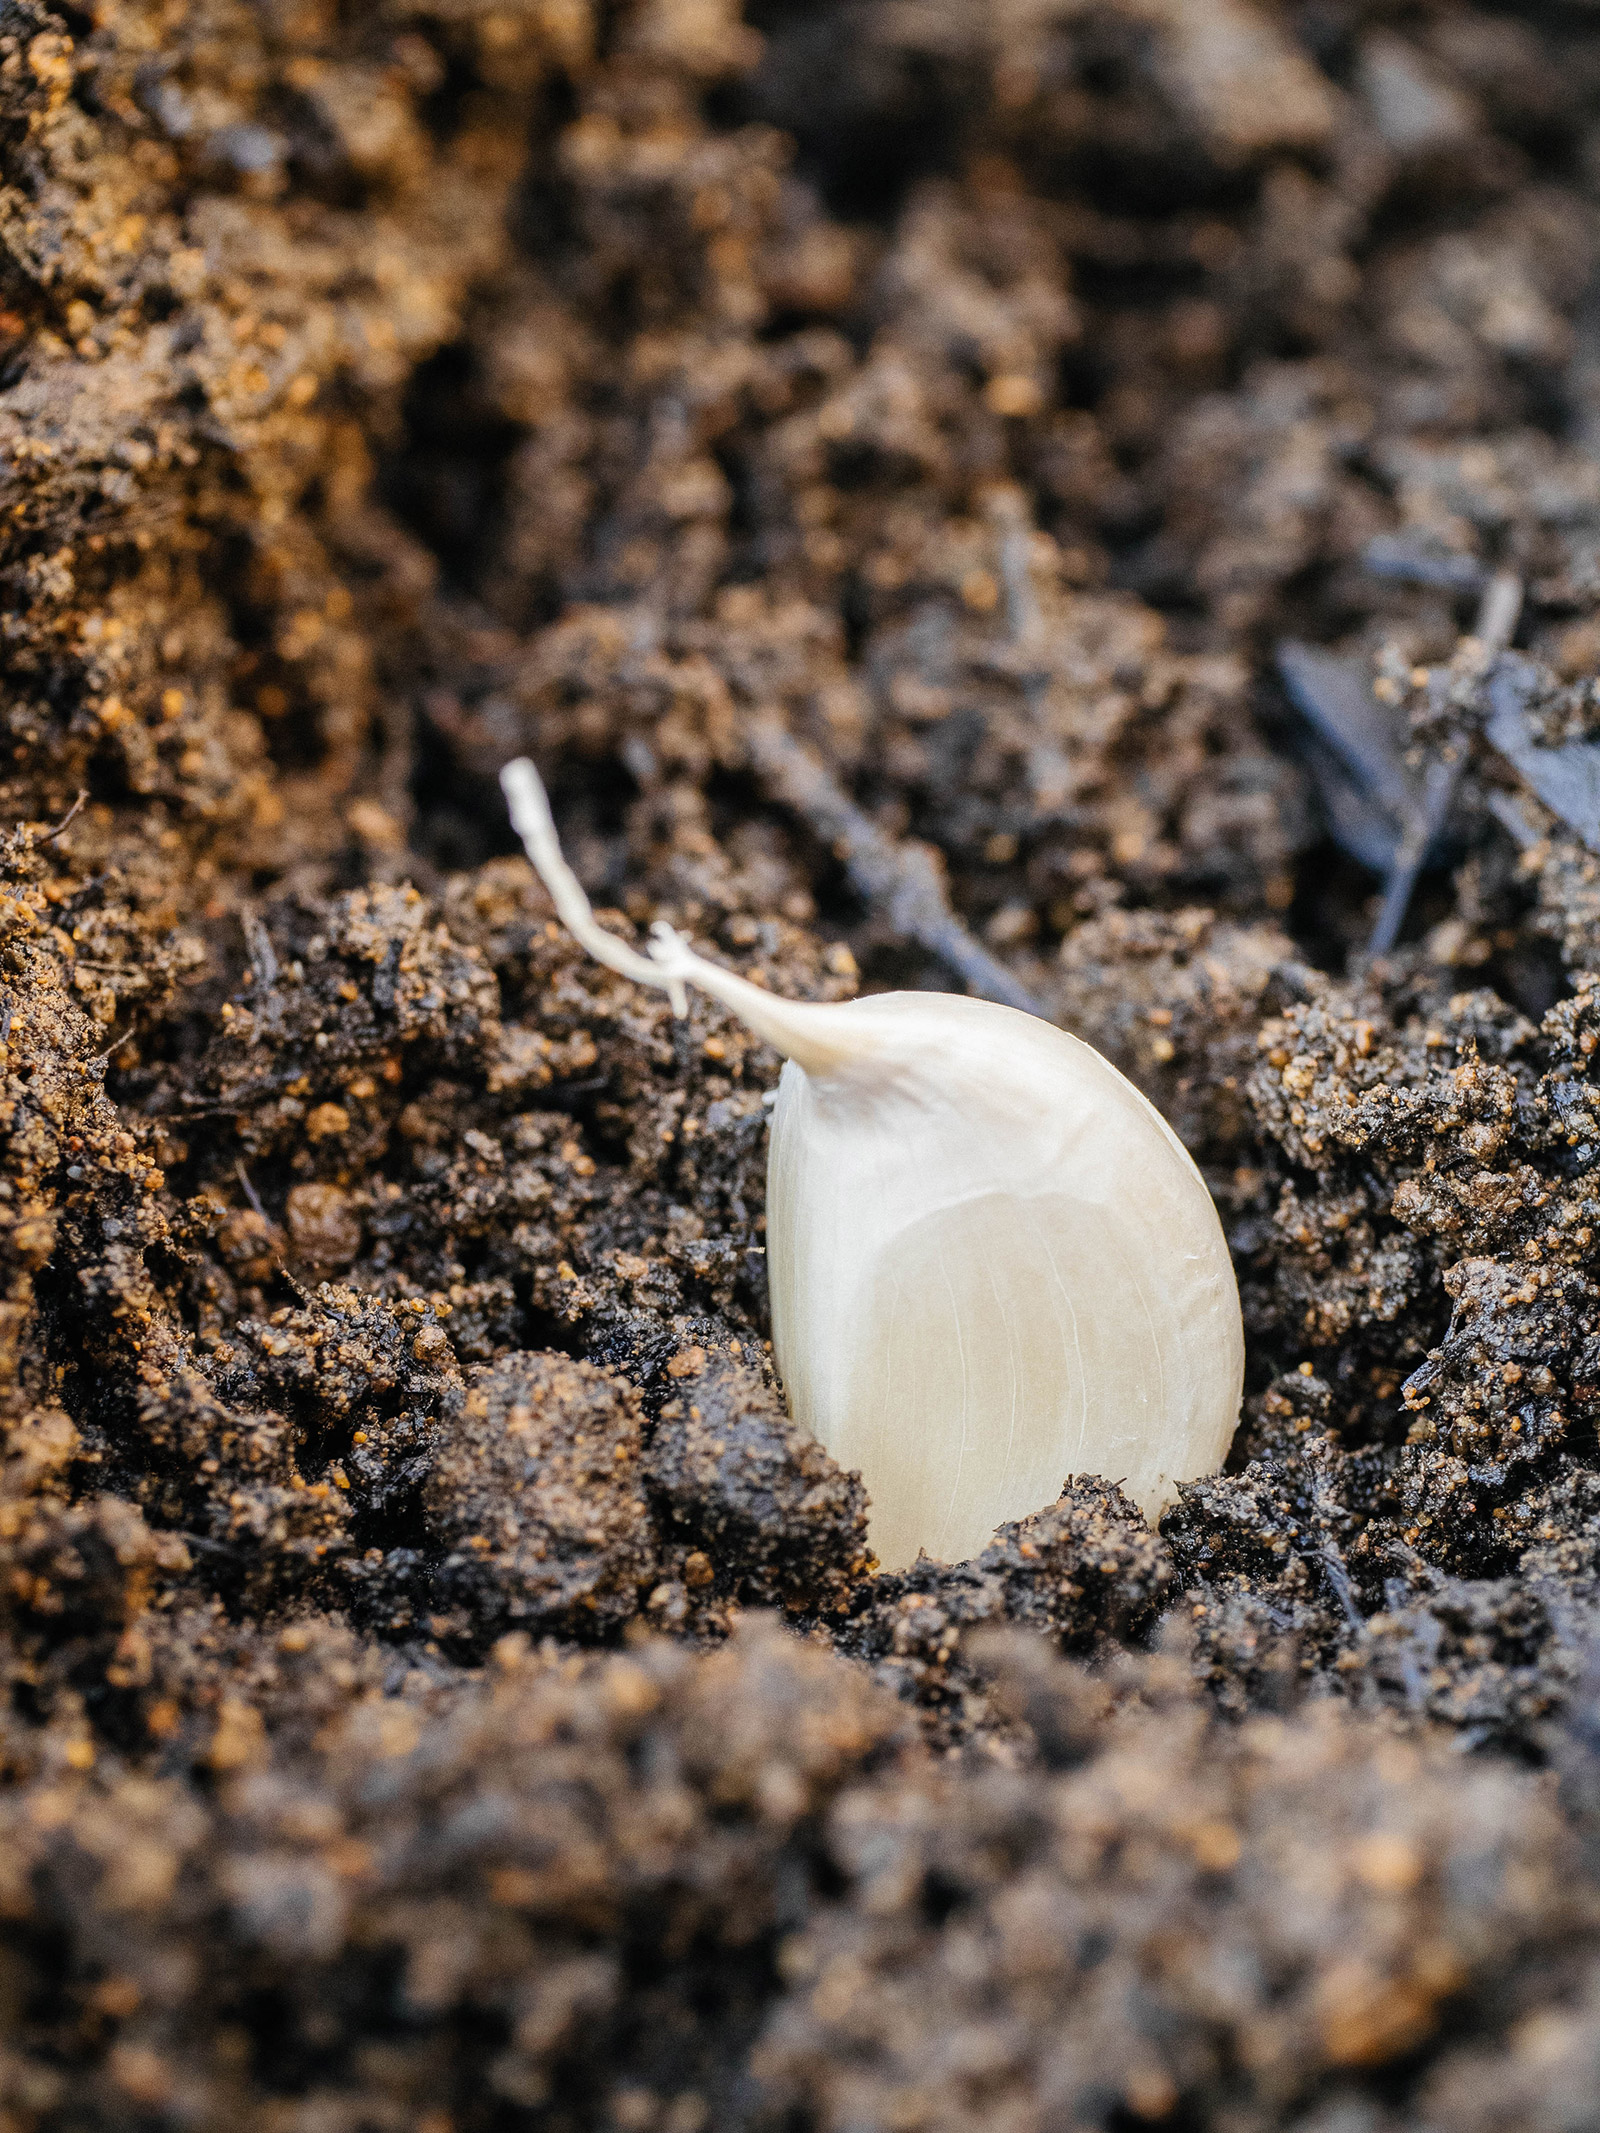 Close-up of garlic clove planted in soil